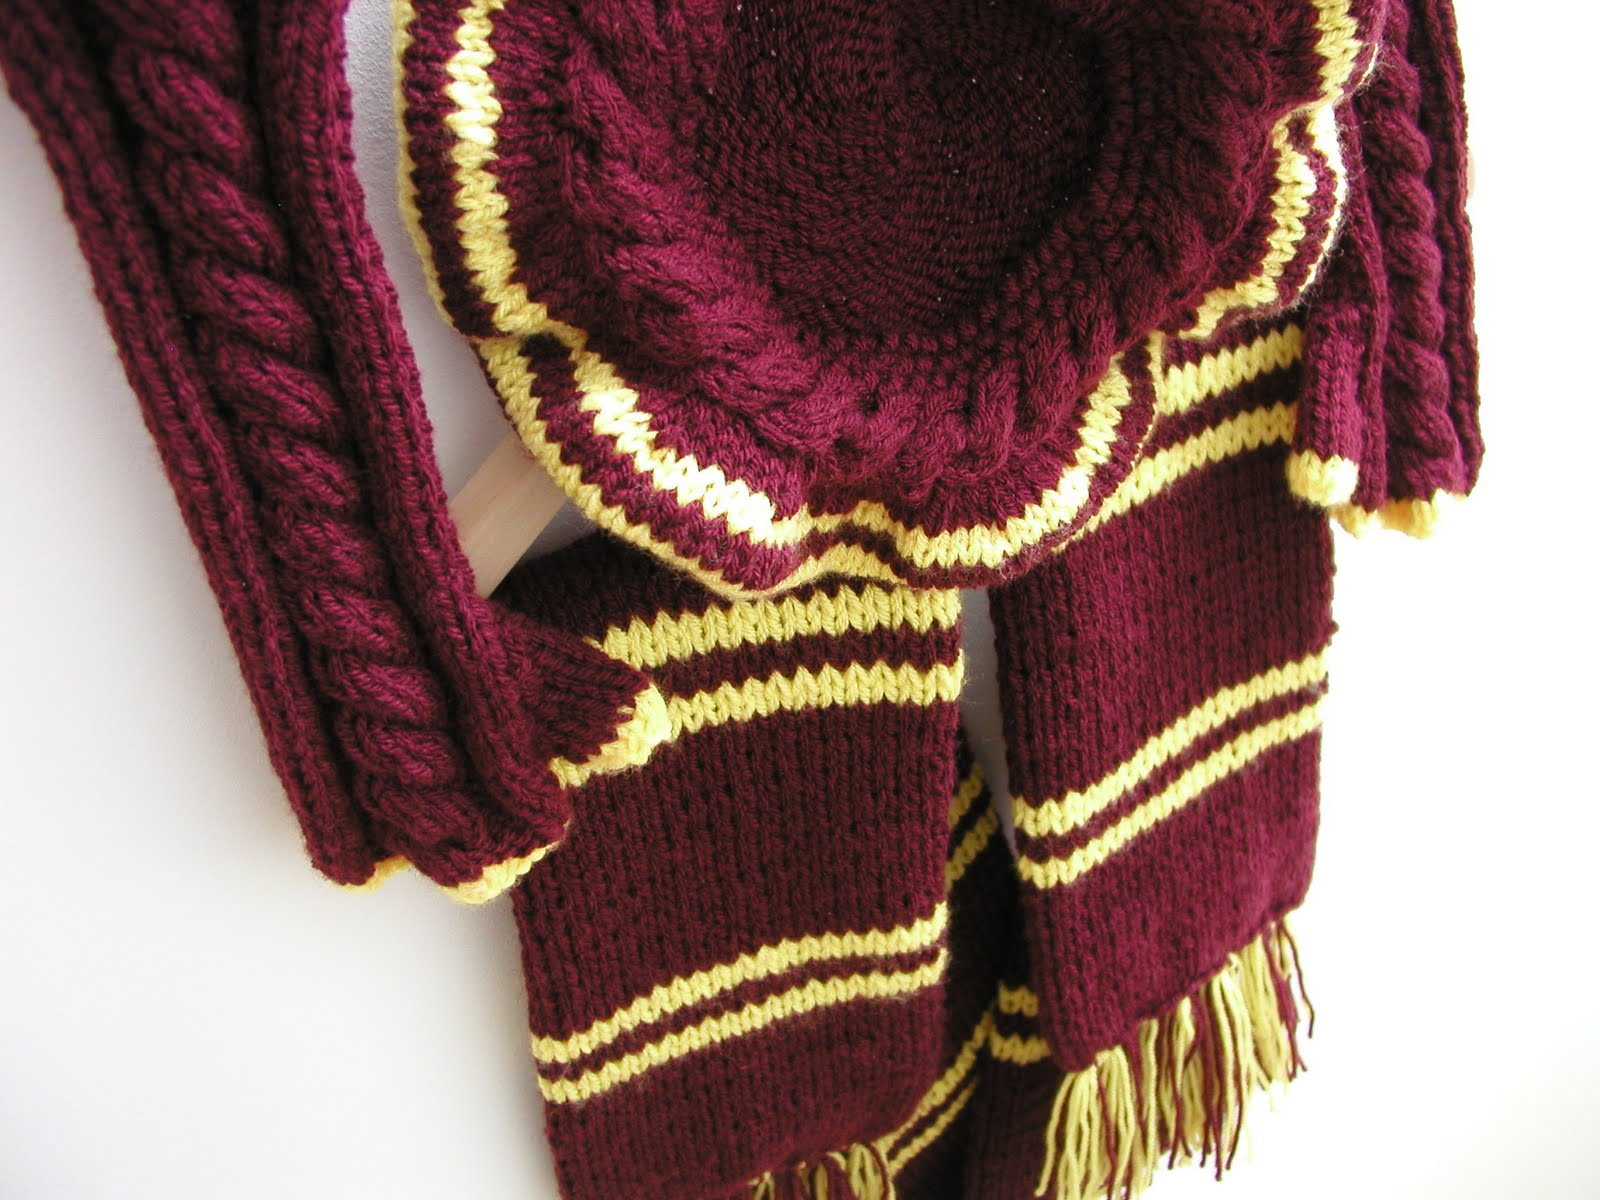 Harry Potter Scarf Knitting Pattern : Hand Knitted Things: Harry Potter Inspired